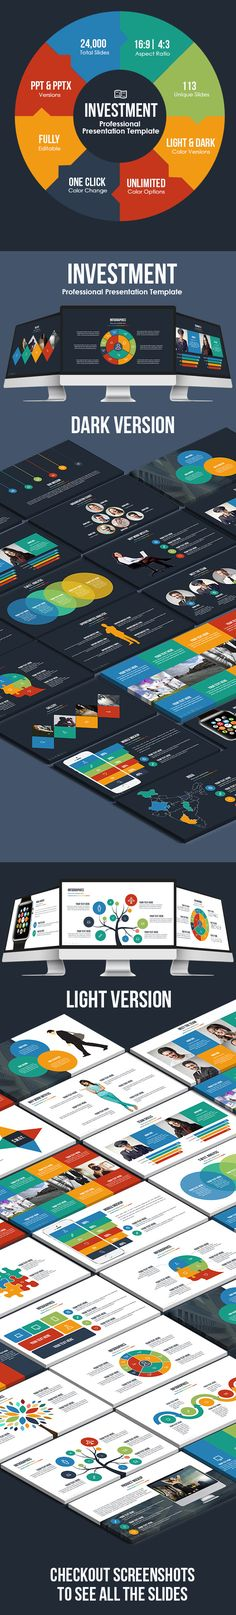 Galaxy keynote presentation template download here http galaxy keynote presentation template download here httpgraphicriveritemgalaxy keynote presentation15997838refksioks keynote templates toneelgroepblik Images